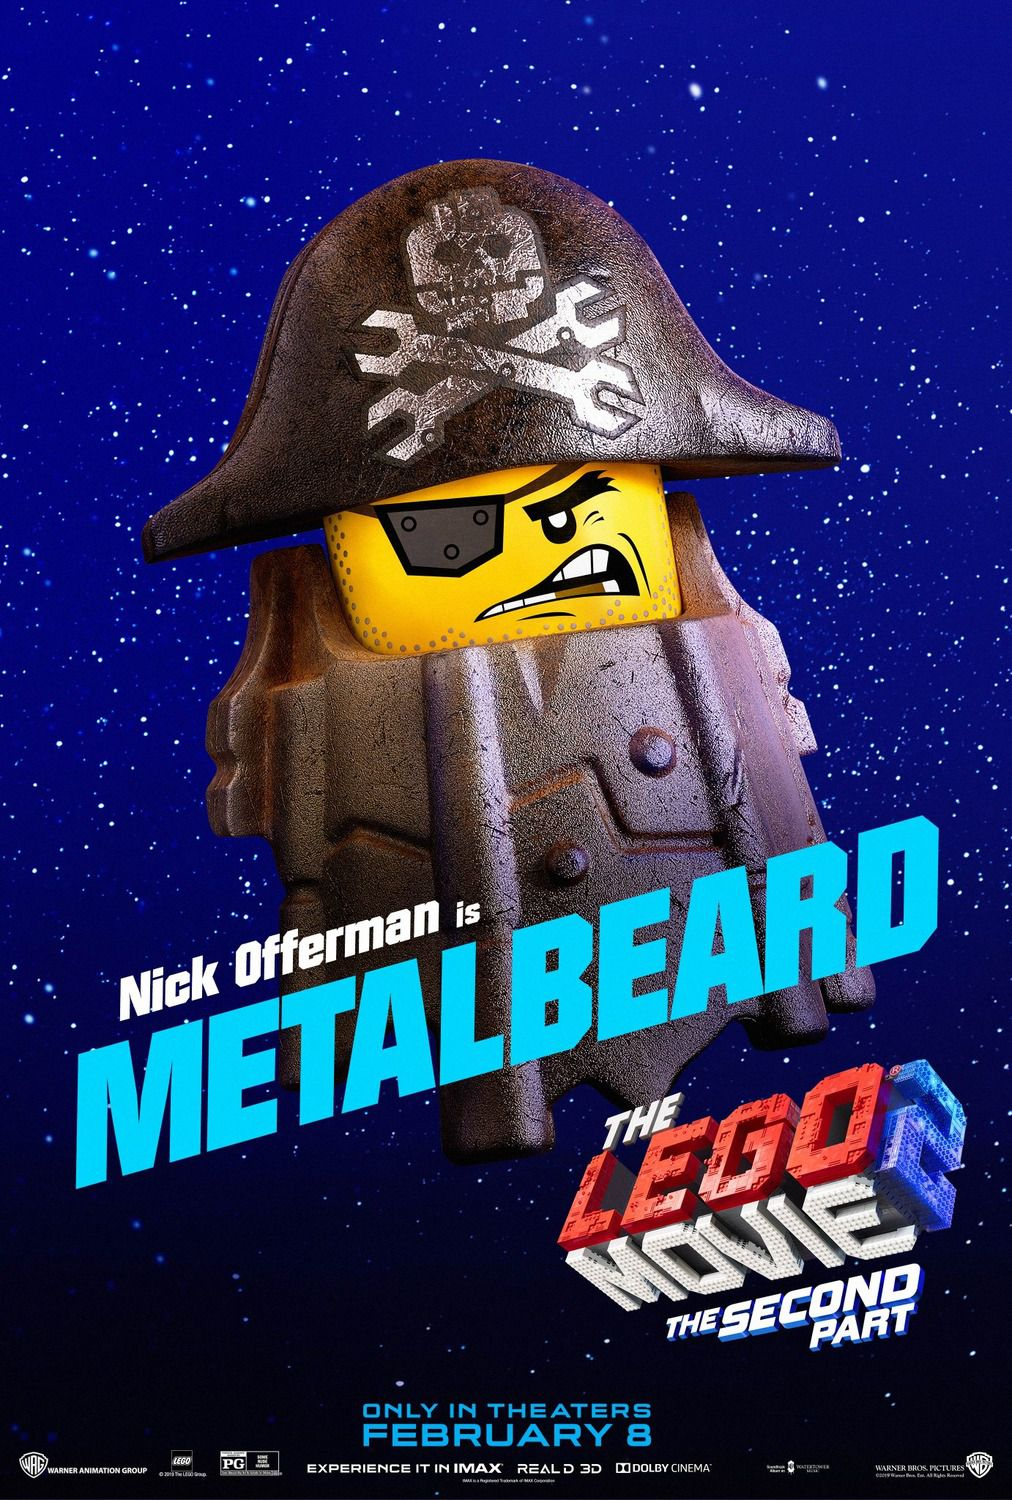 Nick Offerman is Metalbeard